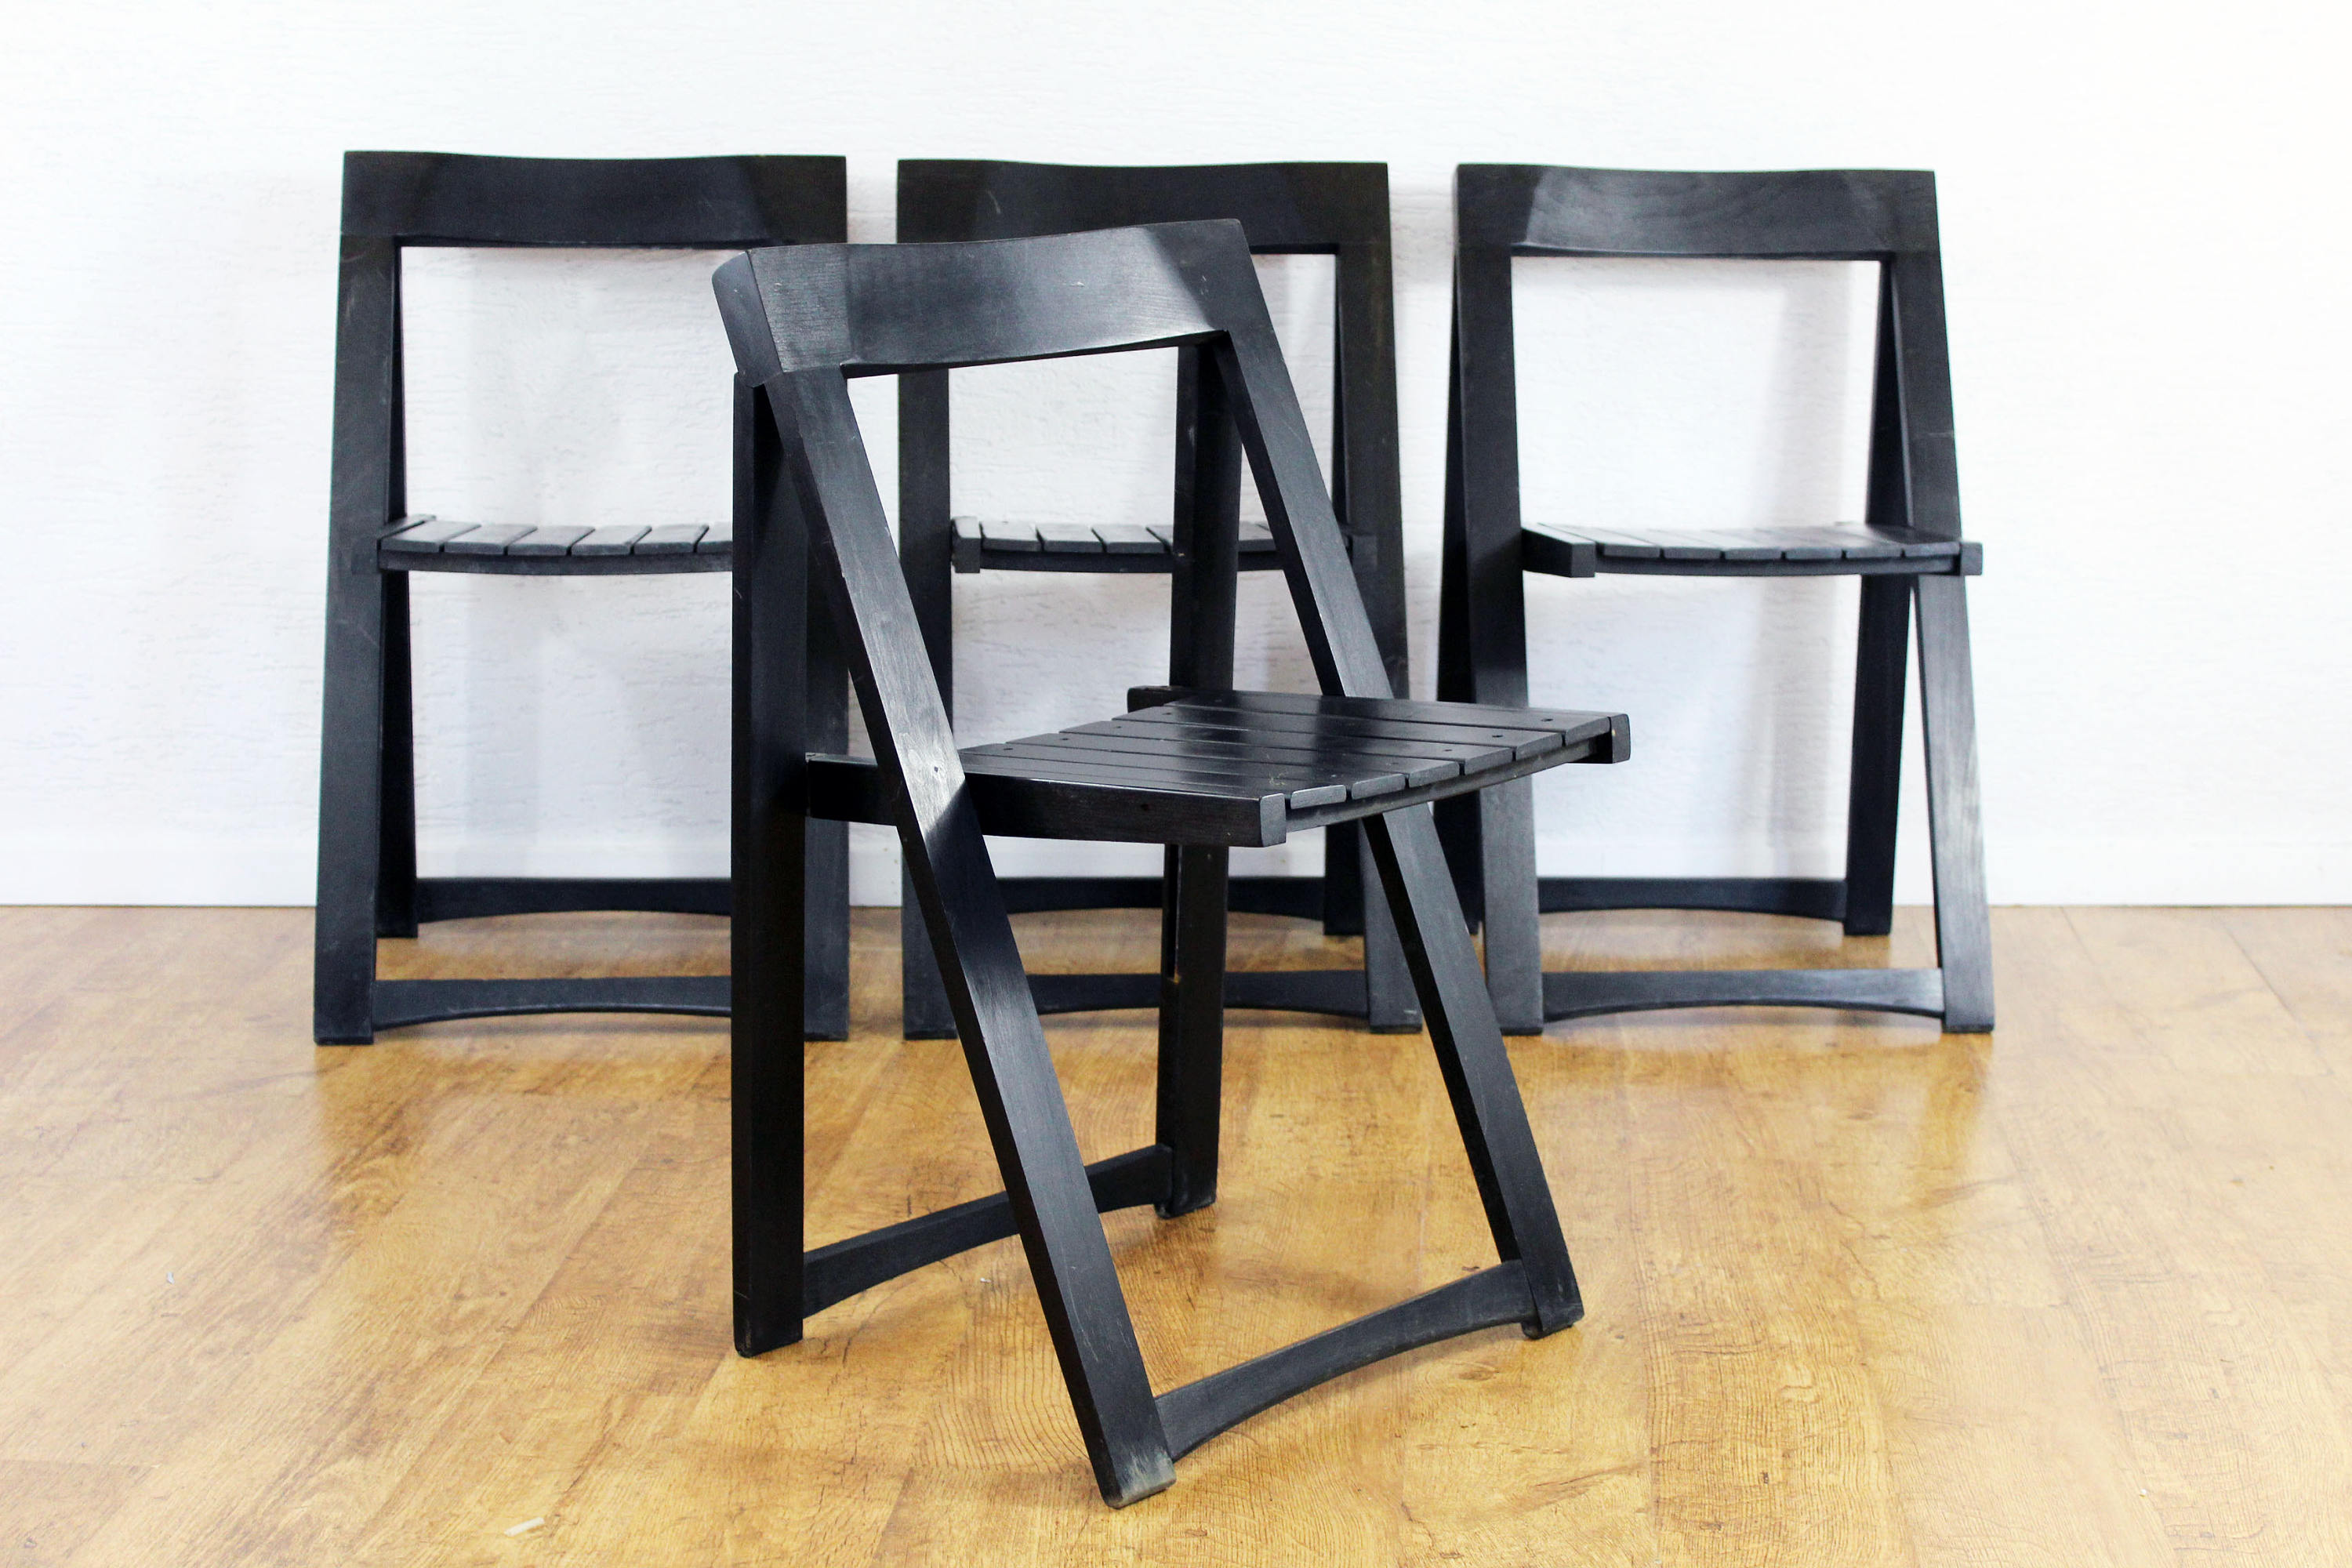 chaises pliantes aldo jacober syn brocante. Black Bedroom Furniture Sets. Home Design Ideas